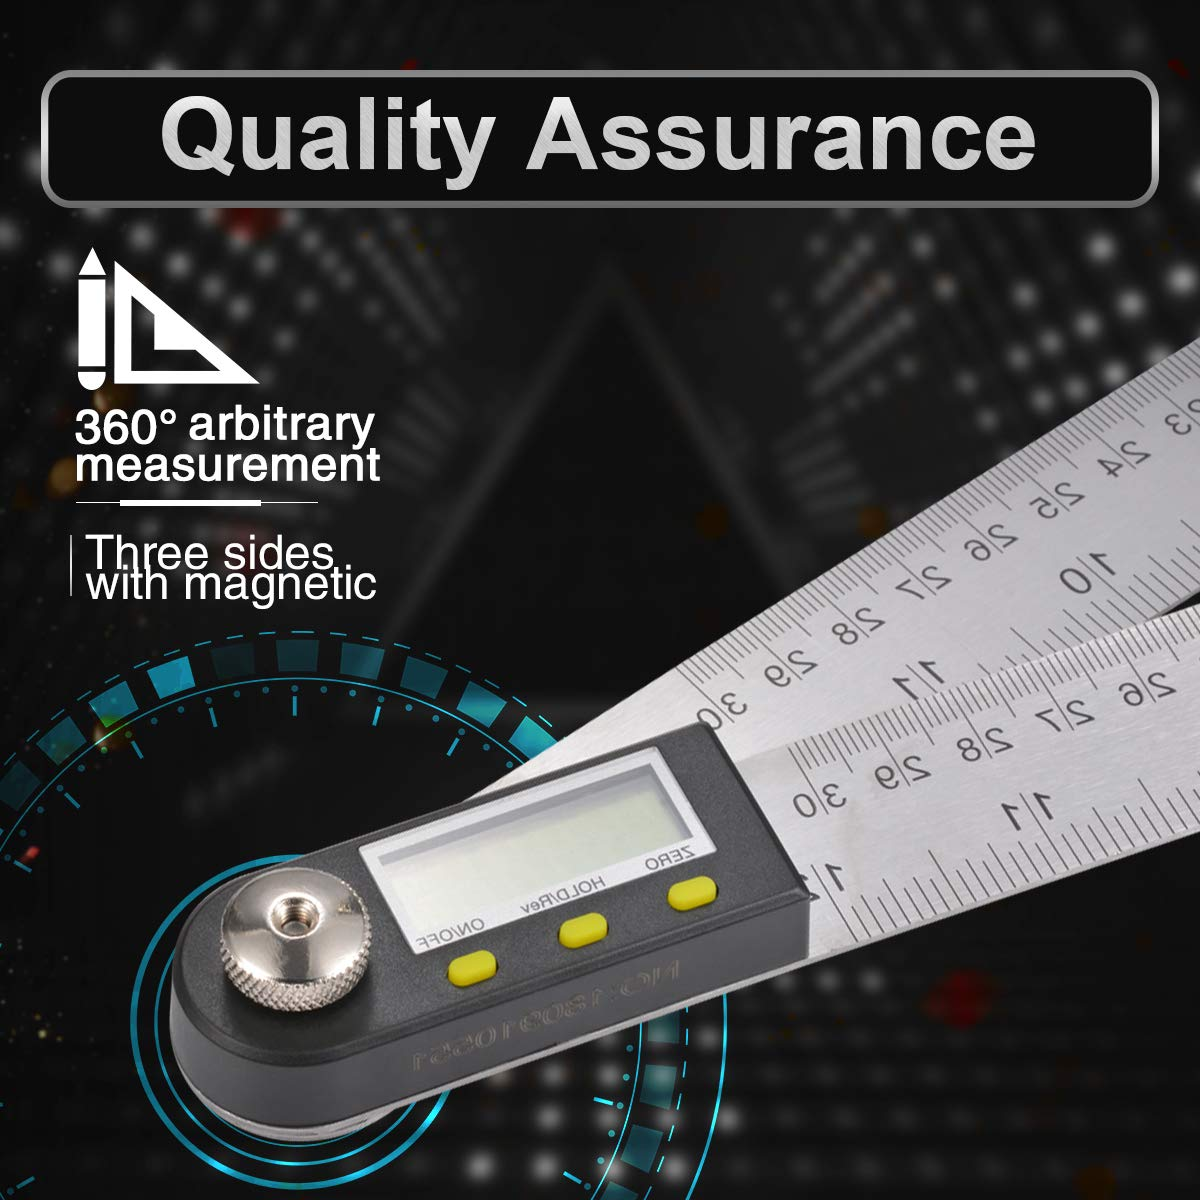 300mm Length 360 Degree with Locking and Zeroing Function Angle Ruler Goniometer KATUR Digital Protractor Ruler with 12 Stainless Steel Bladed Angle Ruler Definition Stainless Steel Ruler